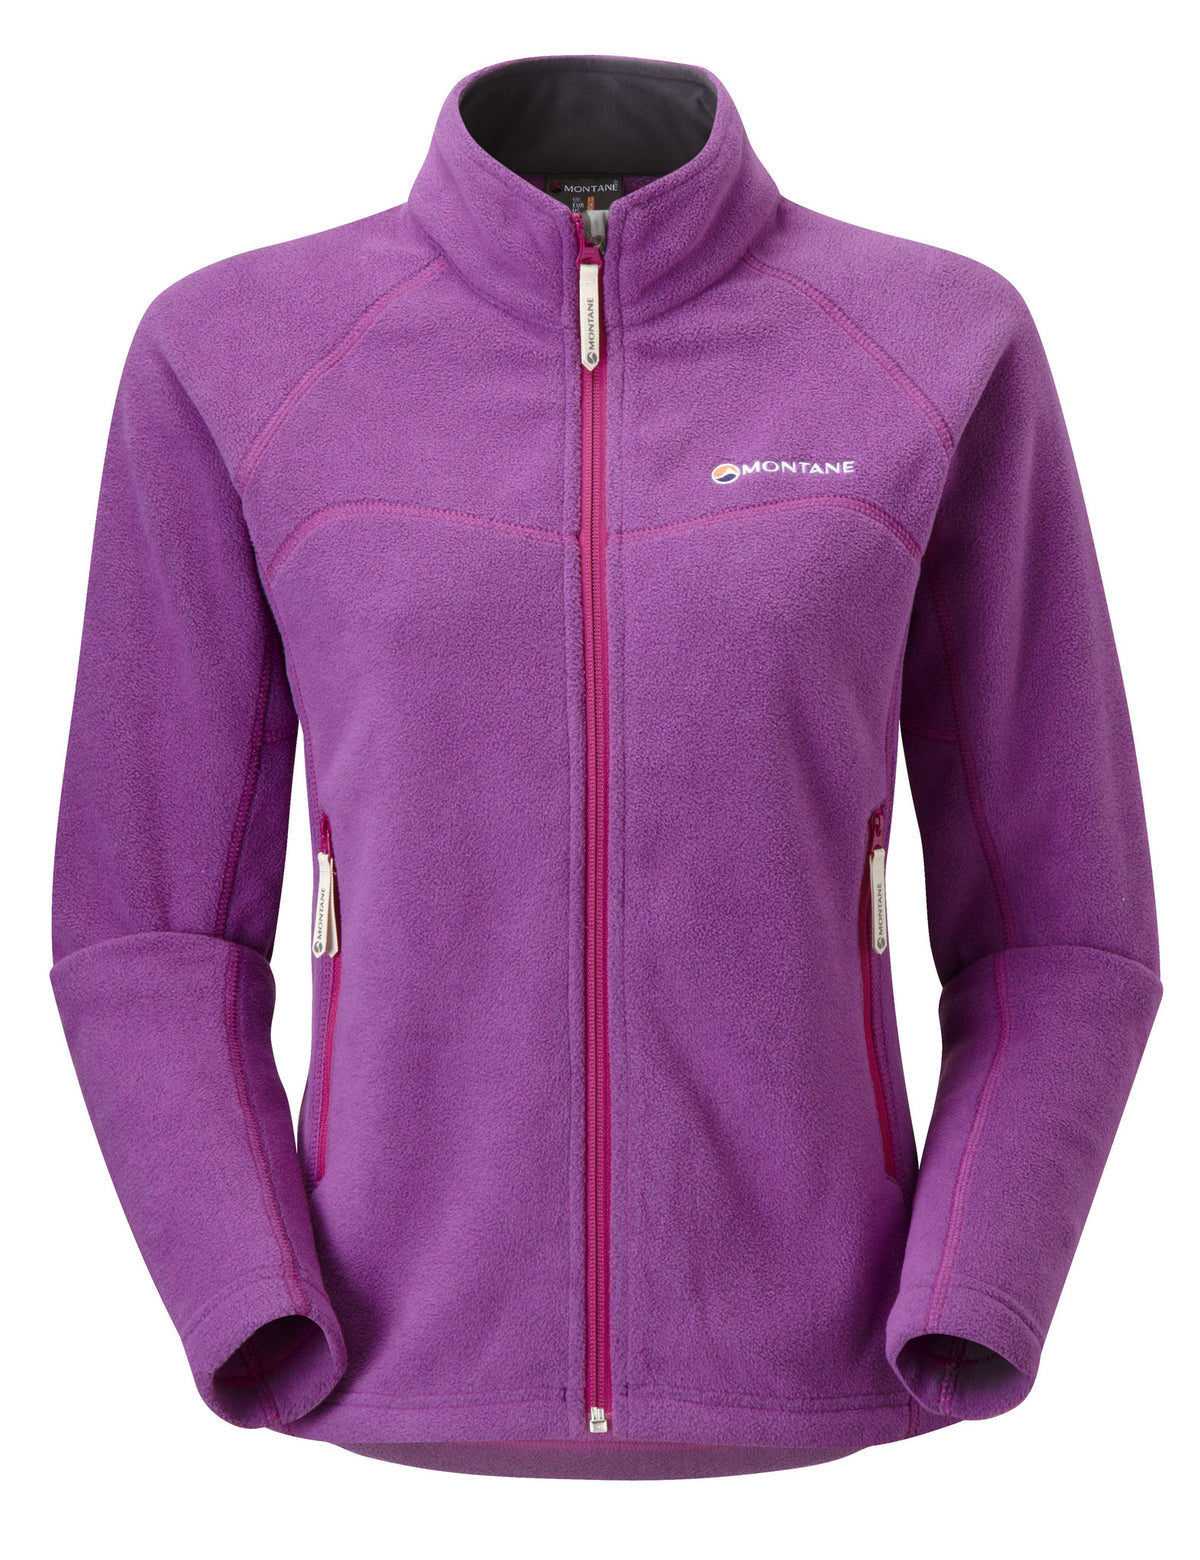 Montane-Women's Snow Storm Jacket-Womens Insulation & Down-Dahlia-XS-Gearaholic.com.sg